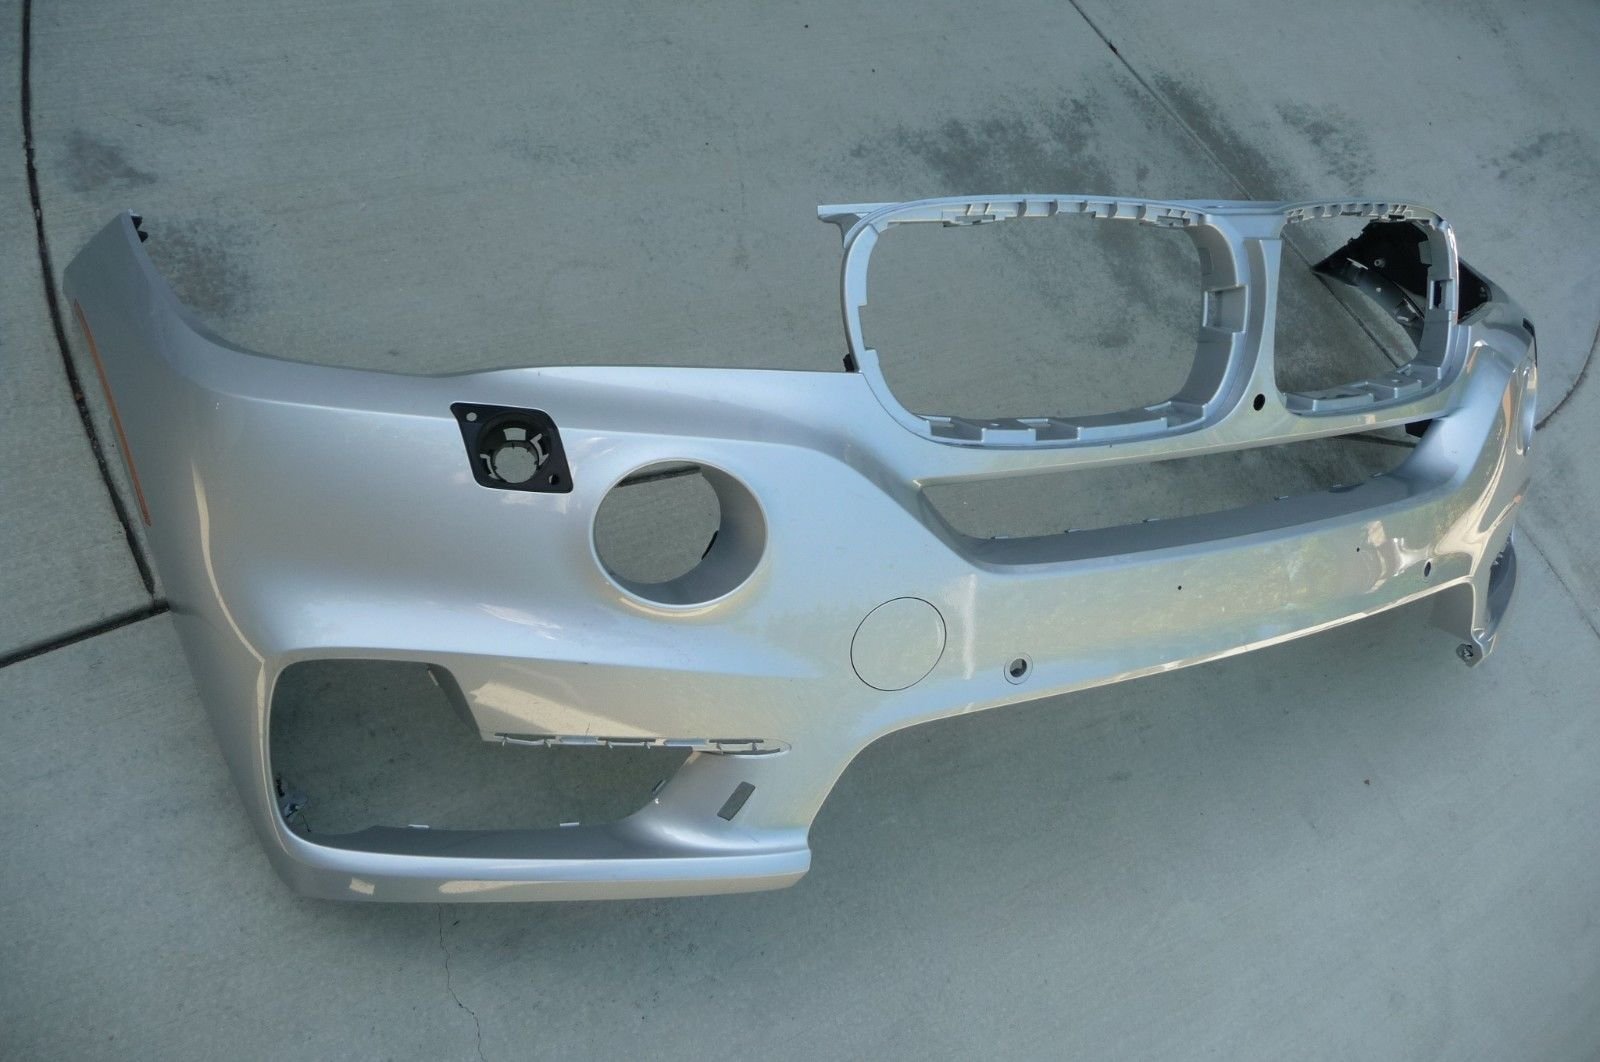 2014 2015 BMW X5 F15 Series with PDC Front Bumper Cover 51117294480 OEM OE